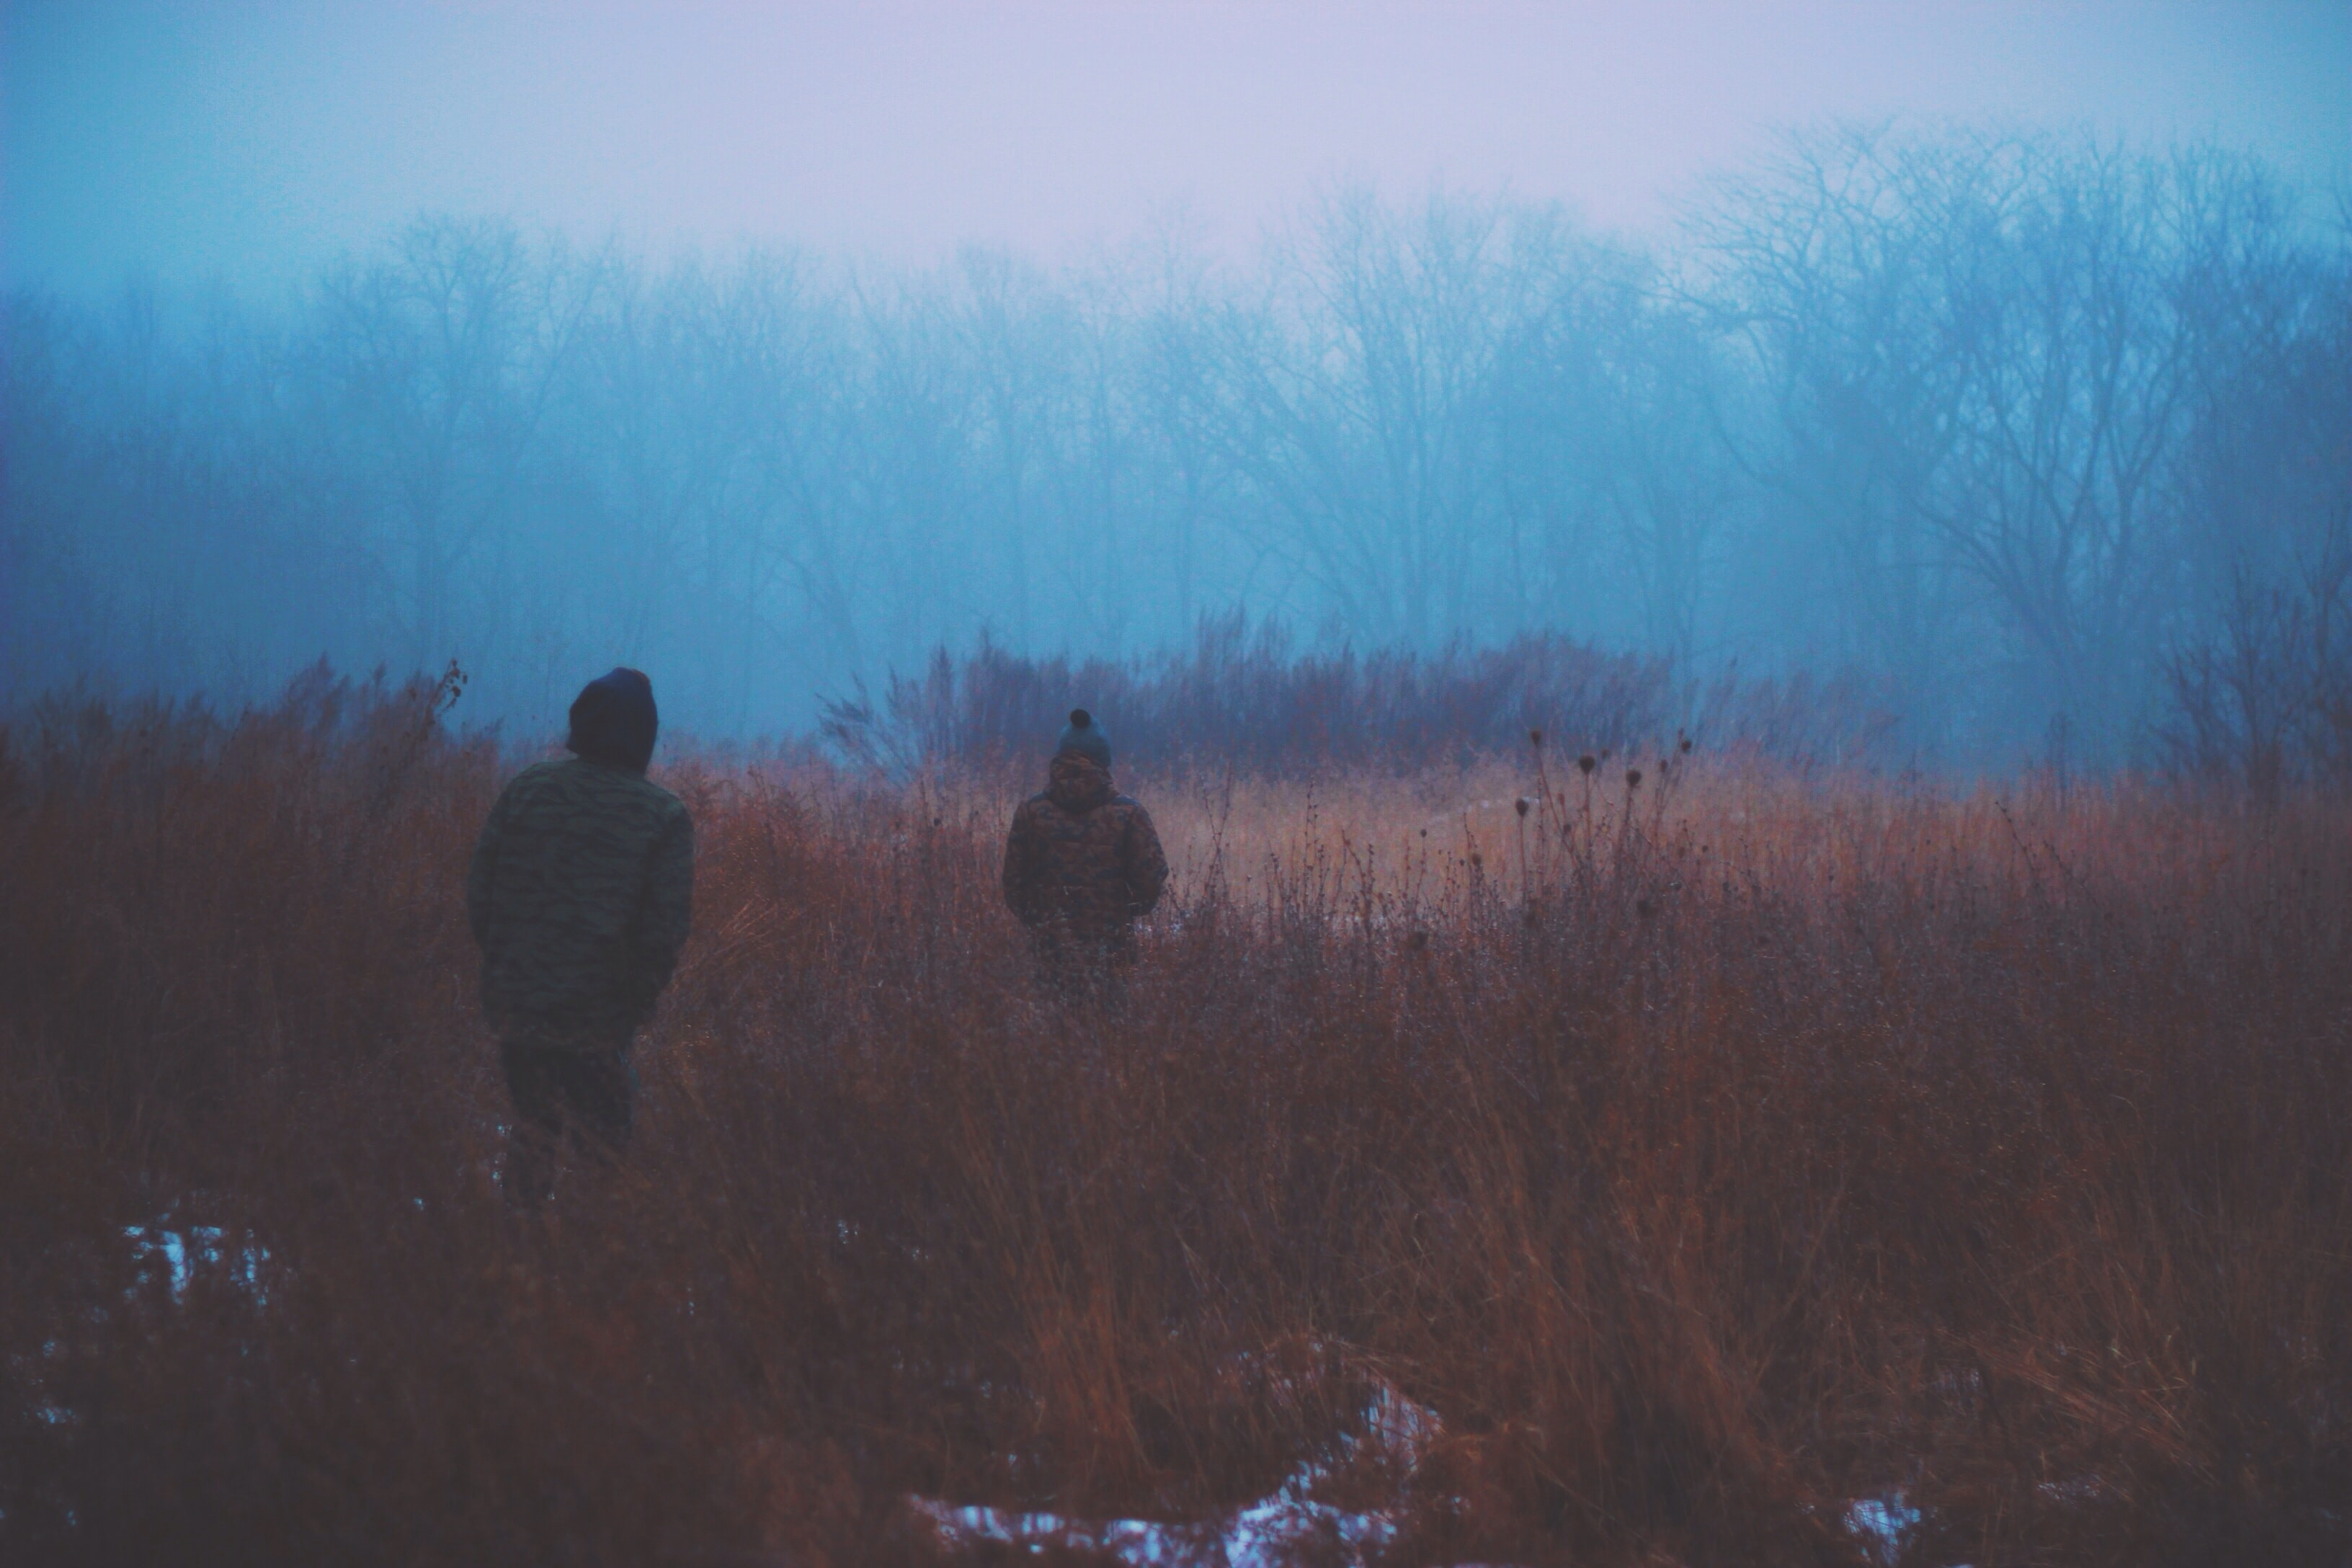 Two people walking through brown grass on a cold evening